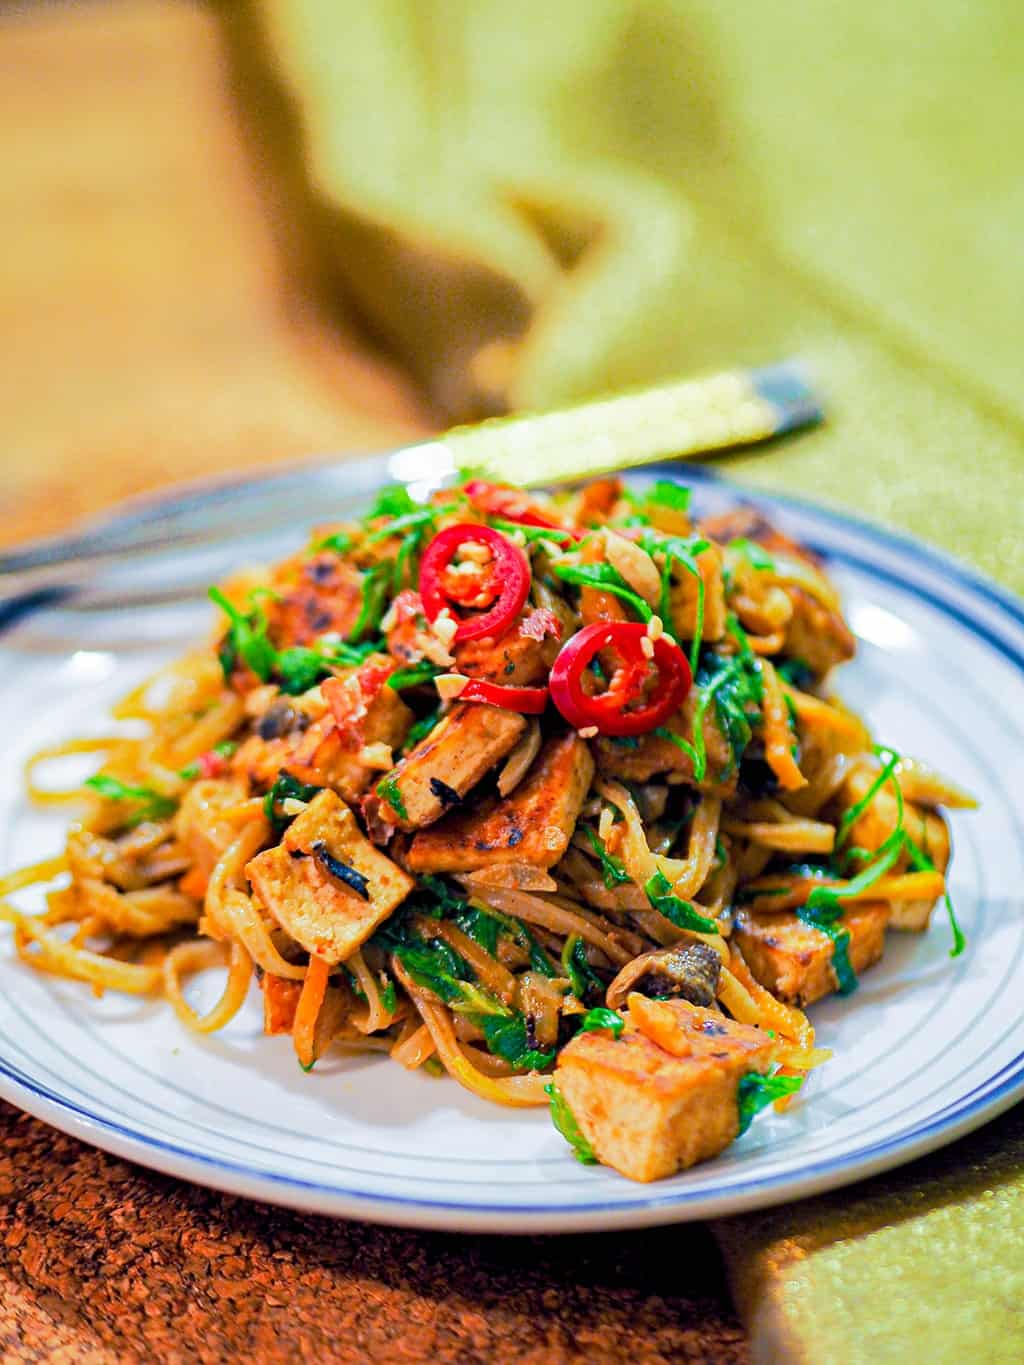 Quick one pan vegan pad thai recipe with tofu